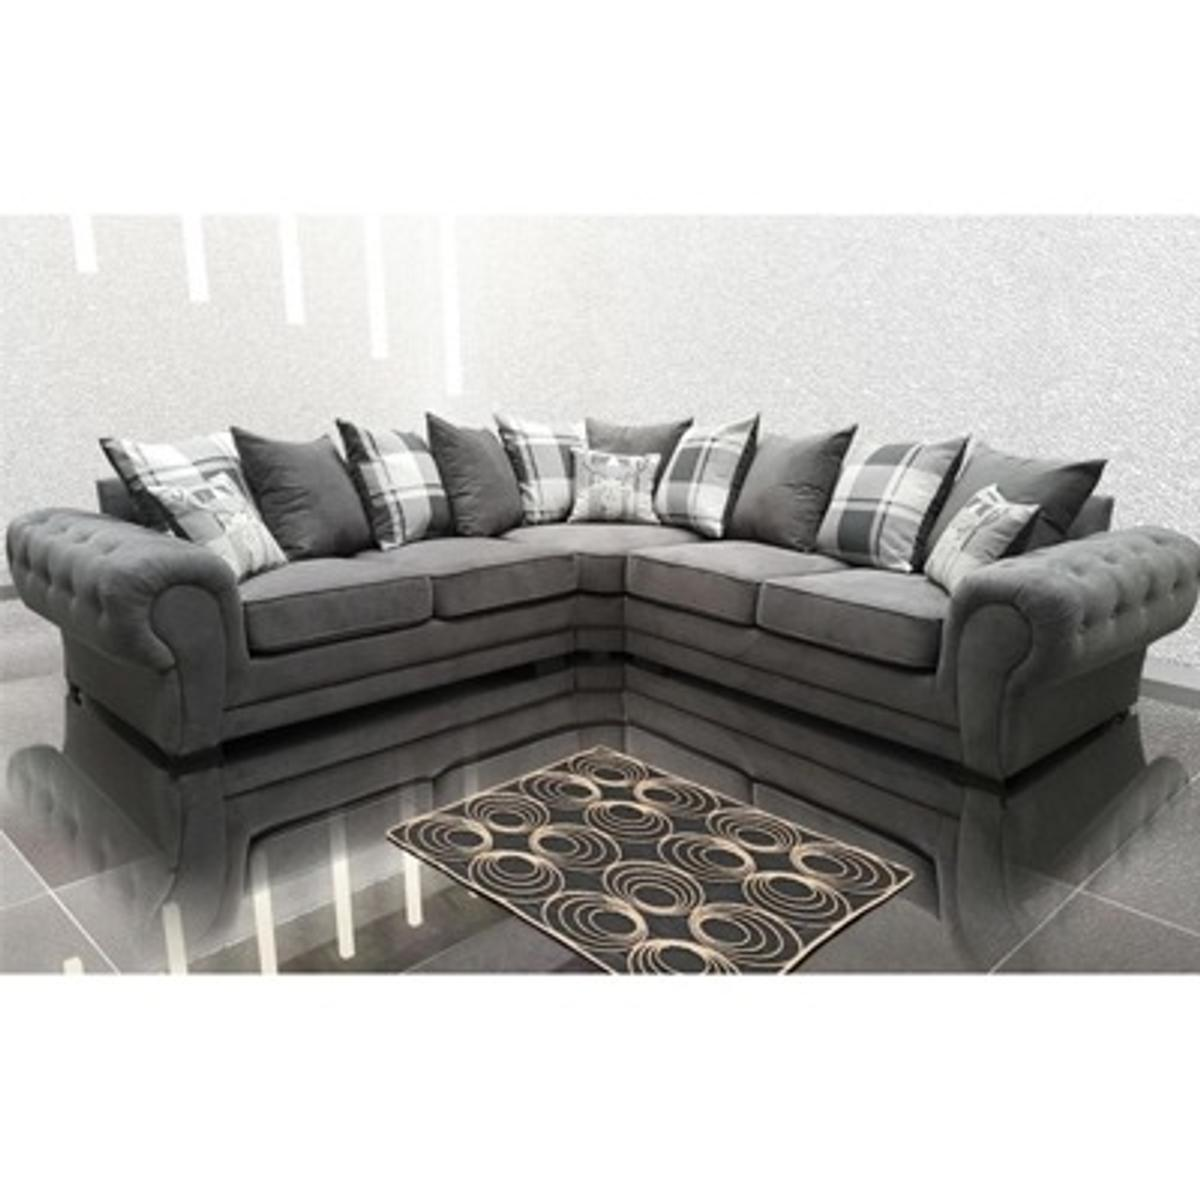 Brand New Fabric Grey Ibiza Corner Sofa